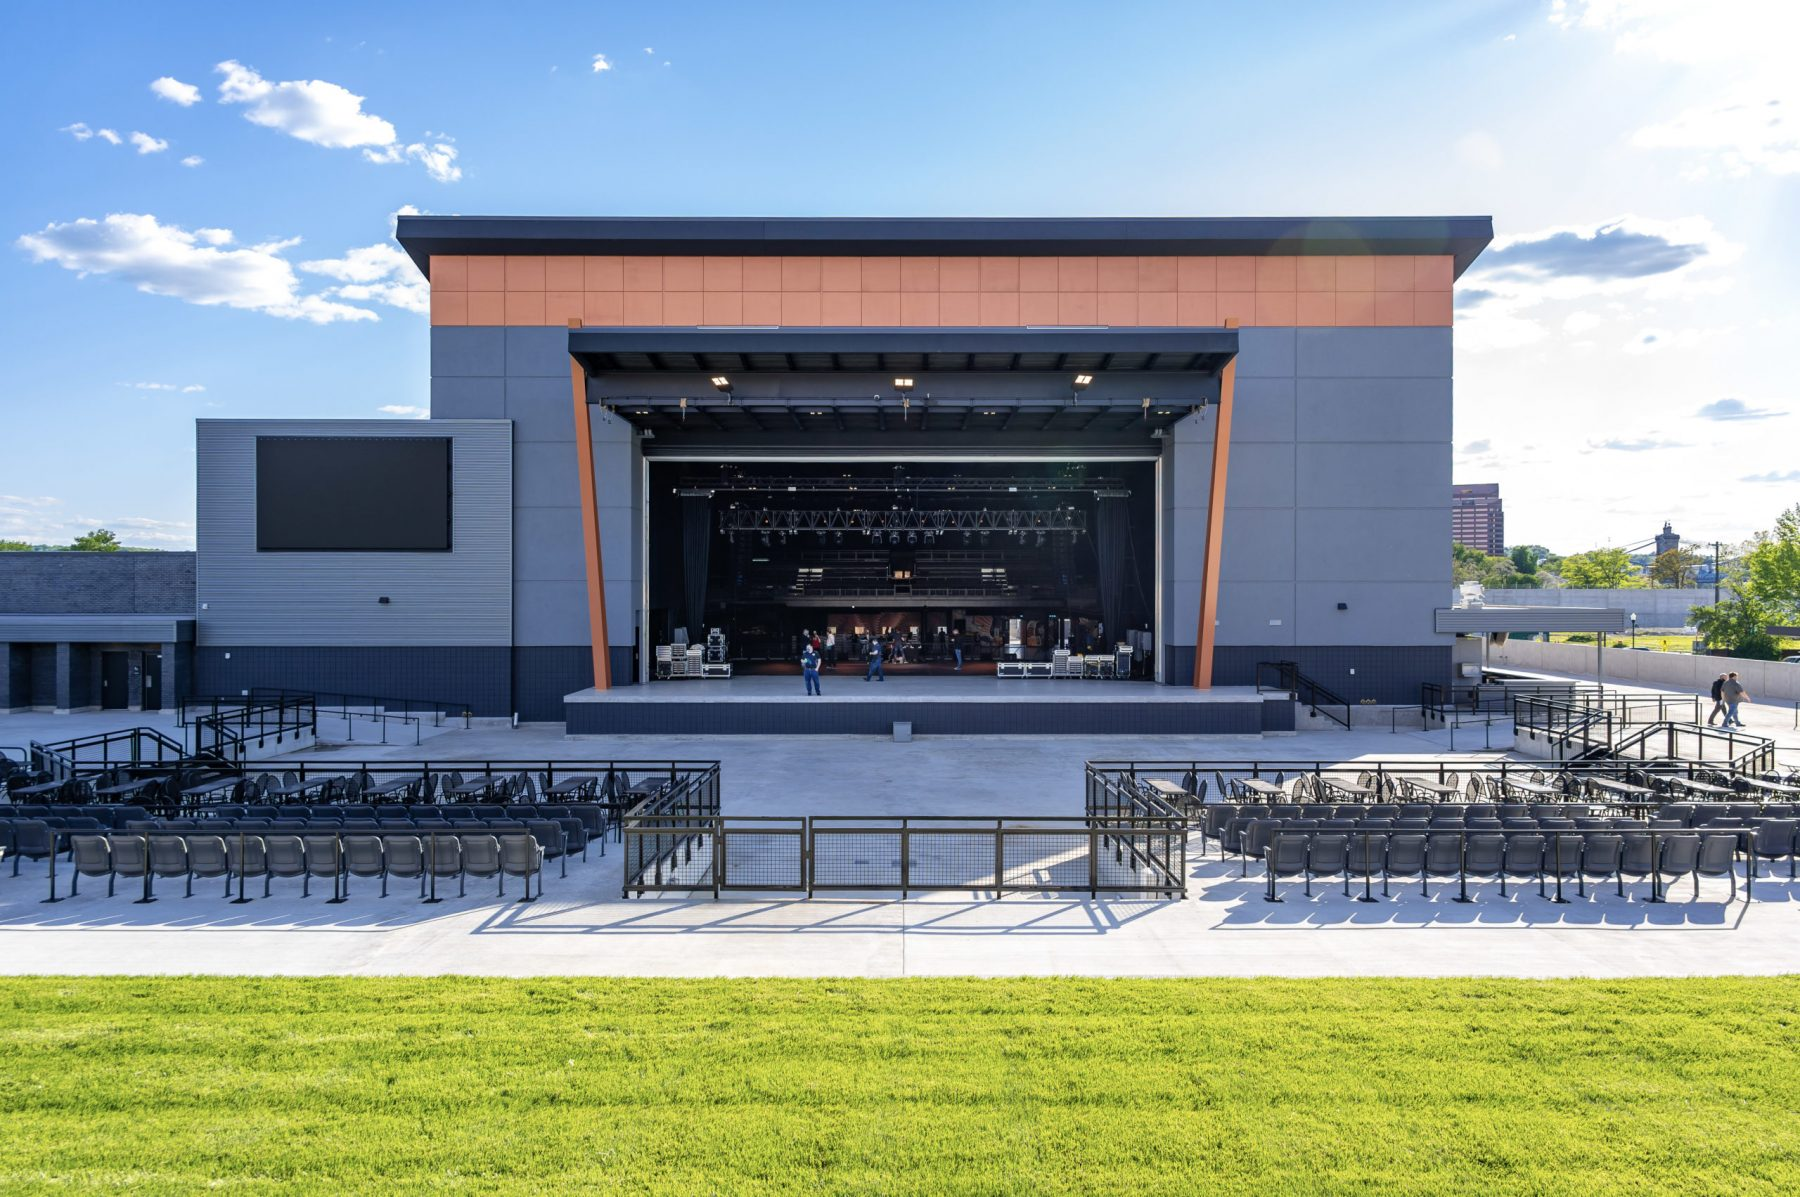 When the retractable wall is raised, fans will be able to see through to the inside of the venue. Photo by Phil Armstrong.